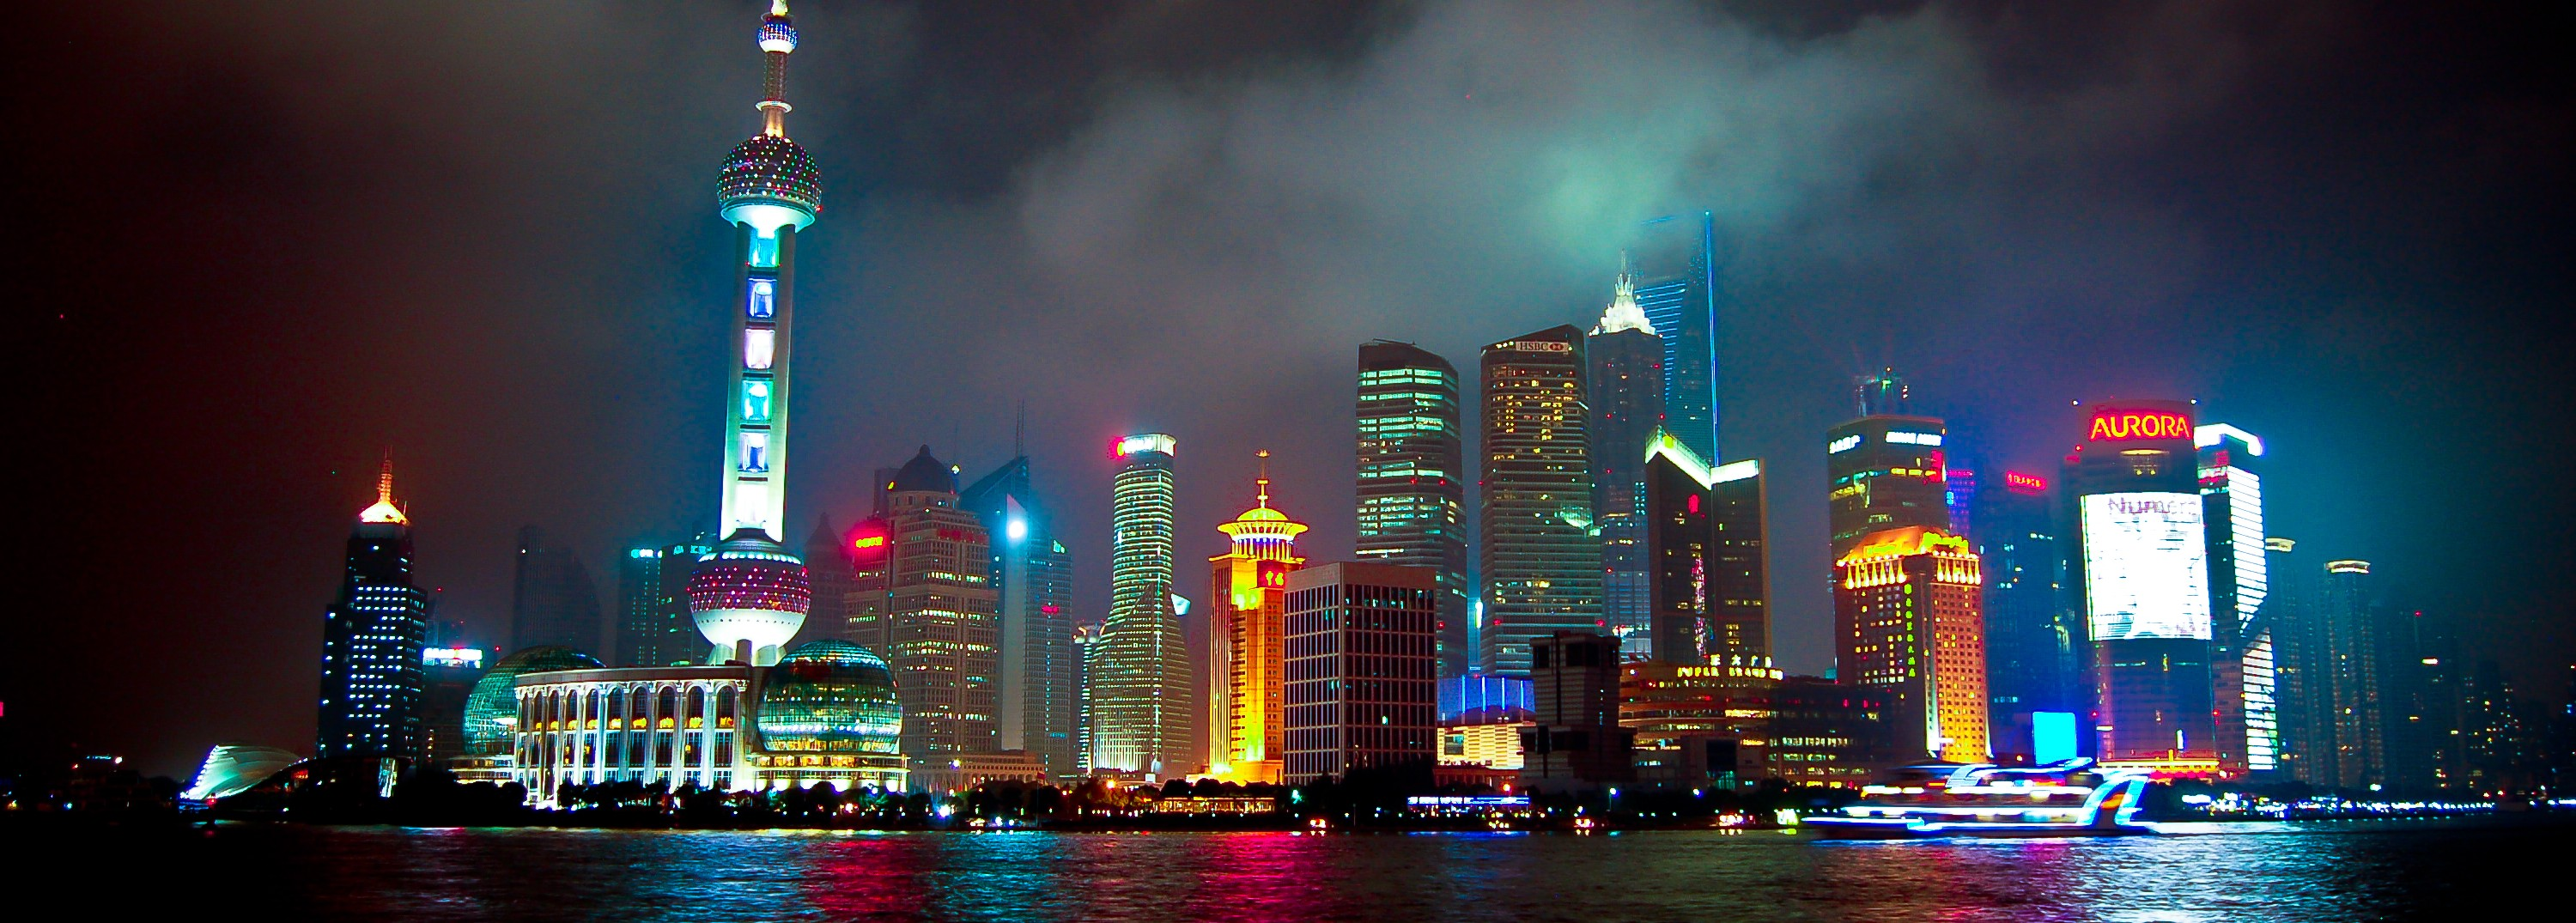 shanghai skyline wallpapers pictures - photo #25